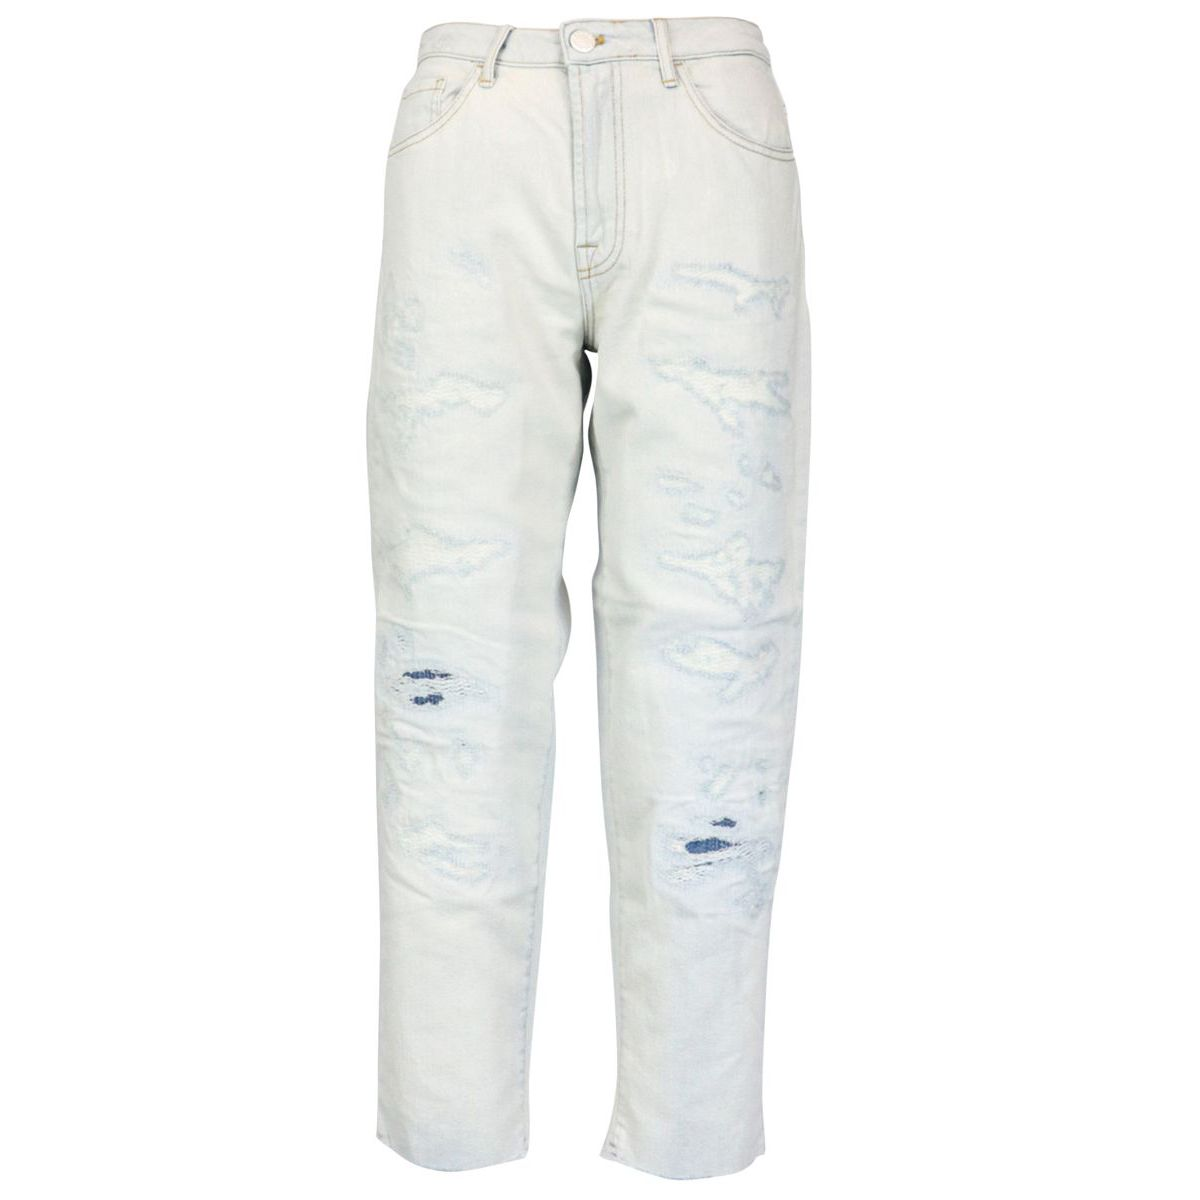 Maddie 1 Mom PJ91 jeans in cotton with rips Light denim Pinko